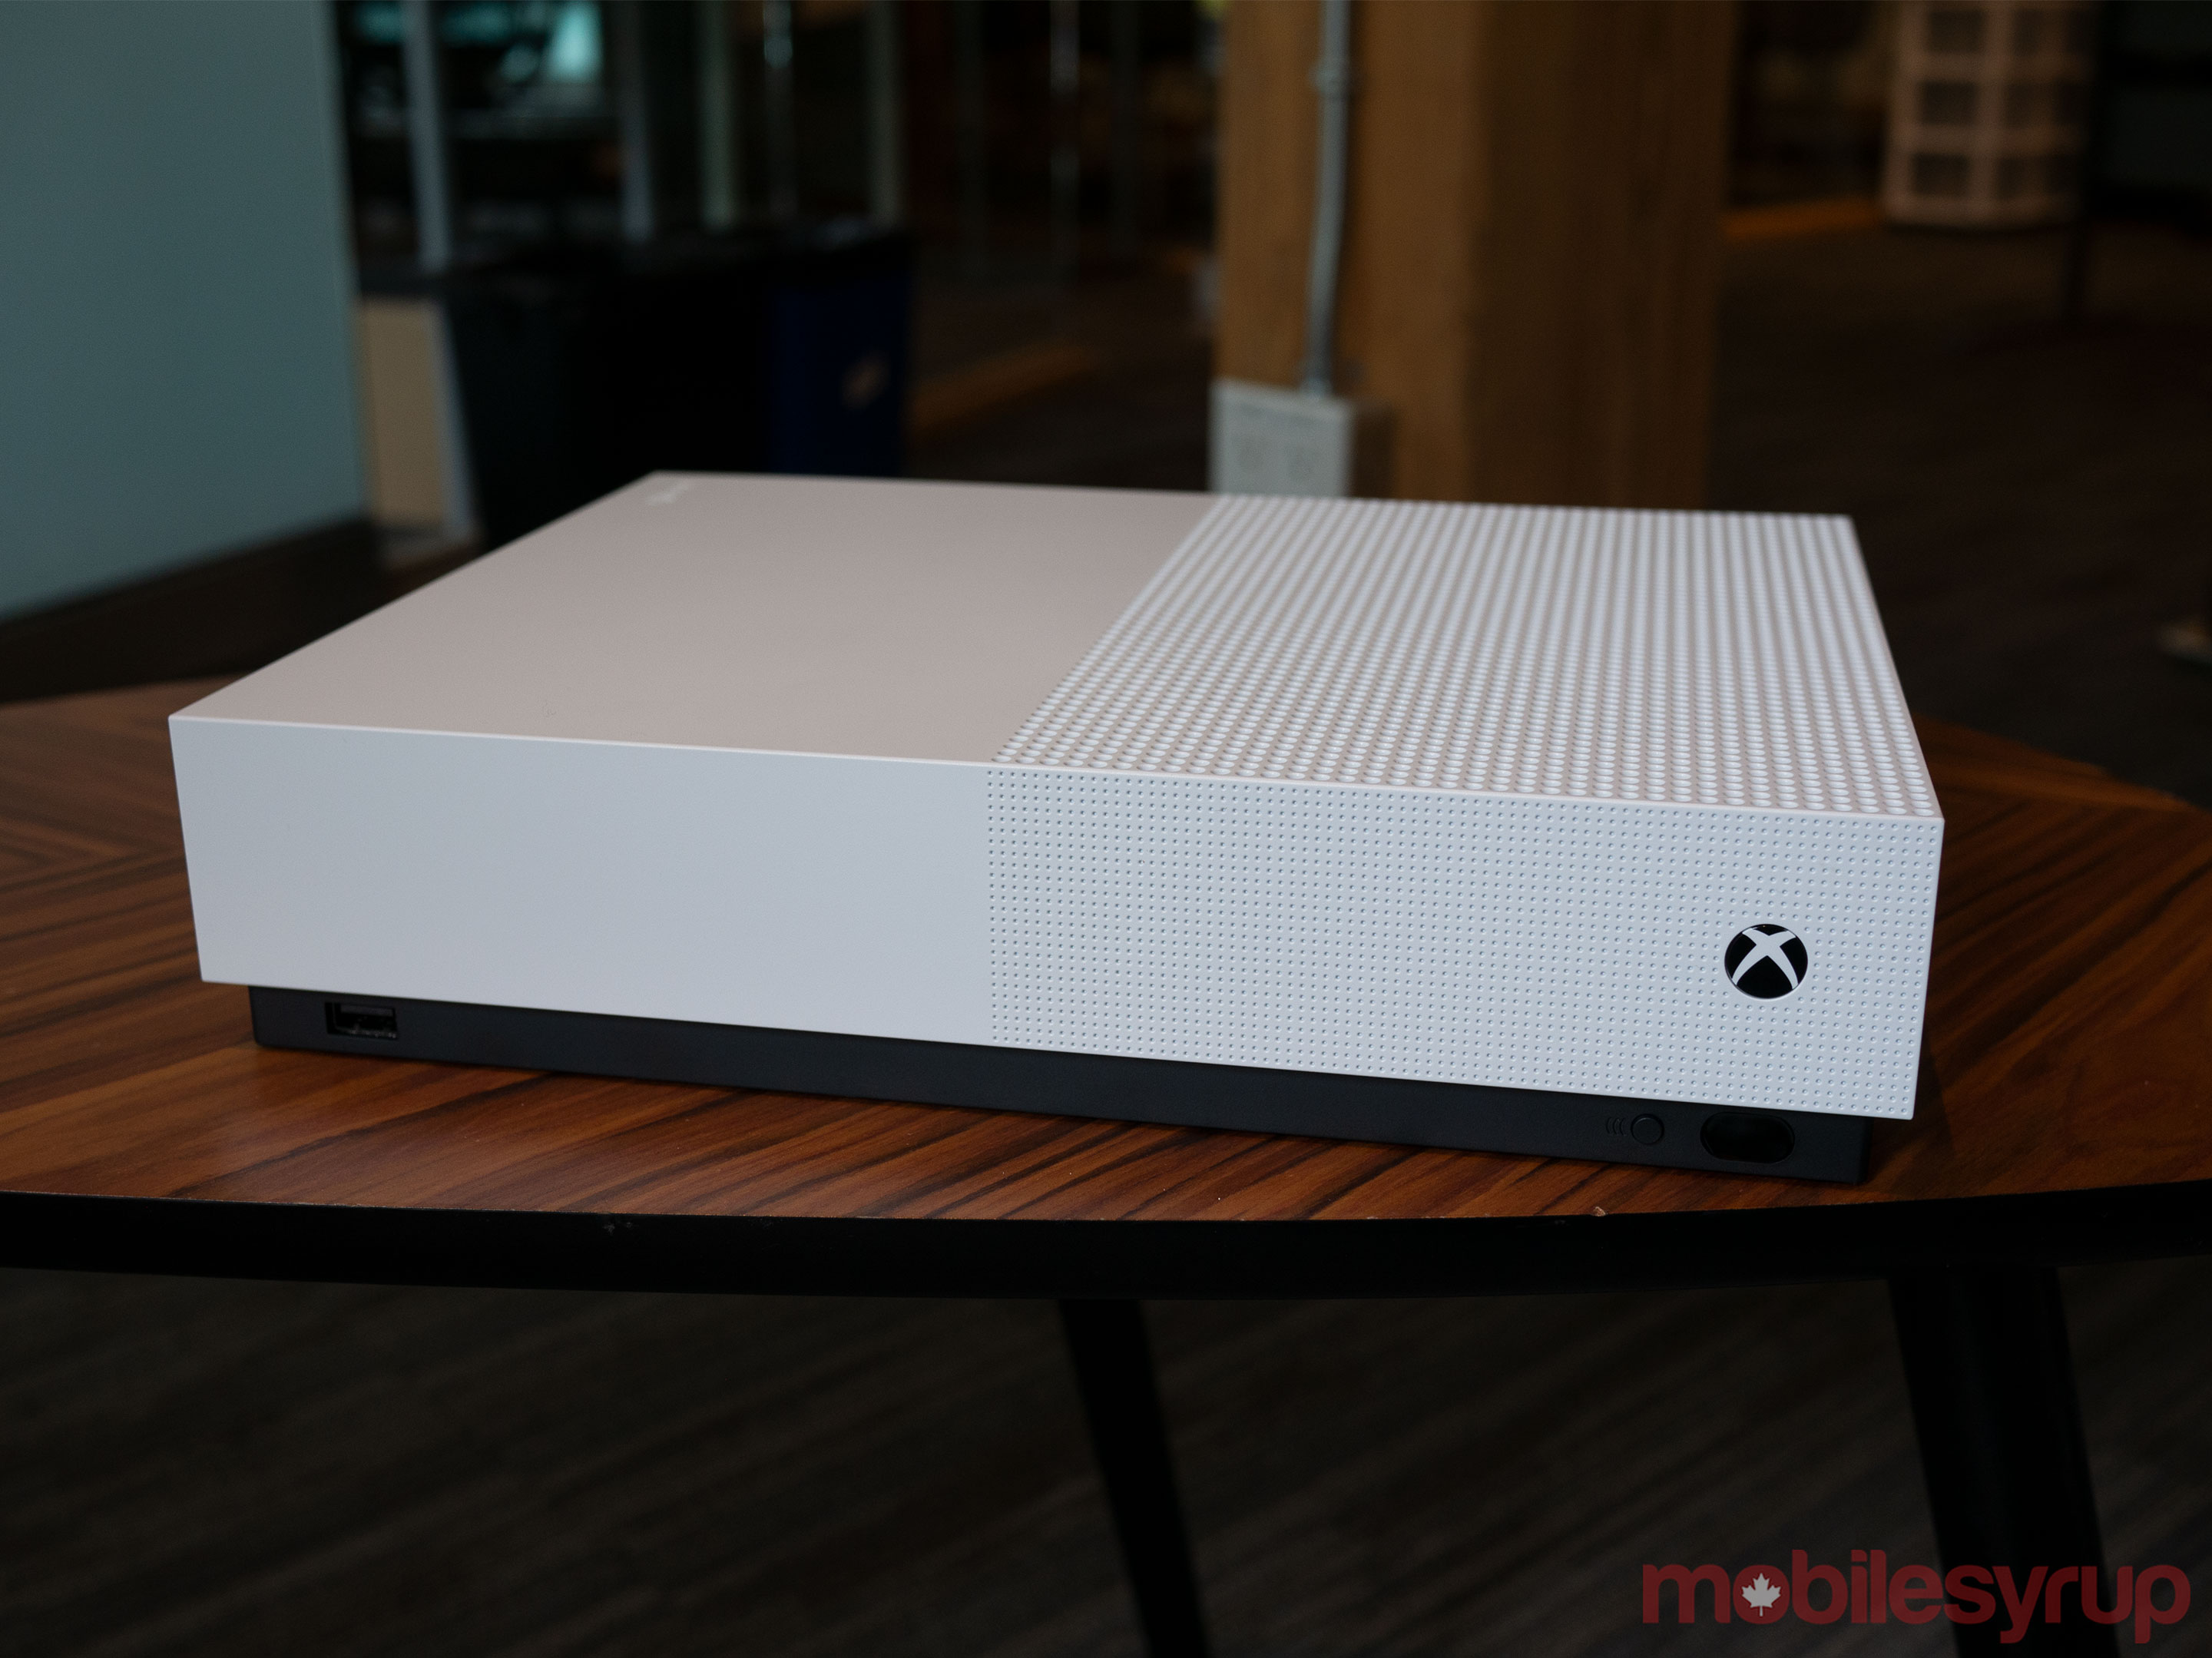 Microsoft's Xbox One S All-Digital Edition is an interesting